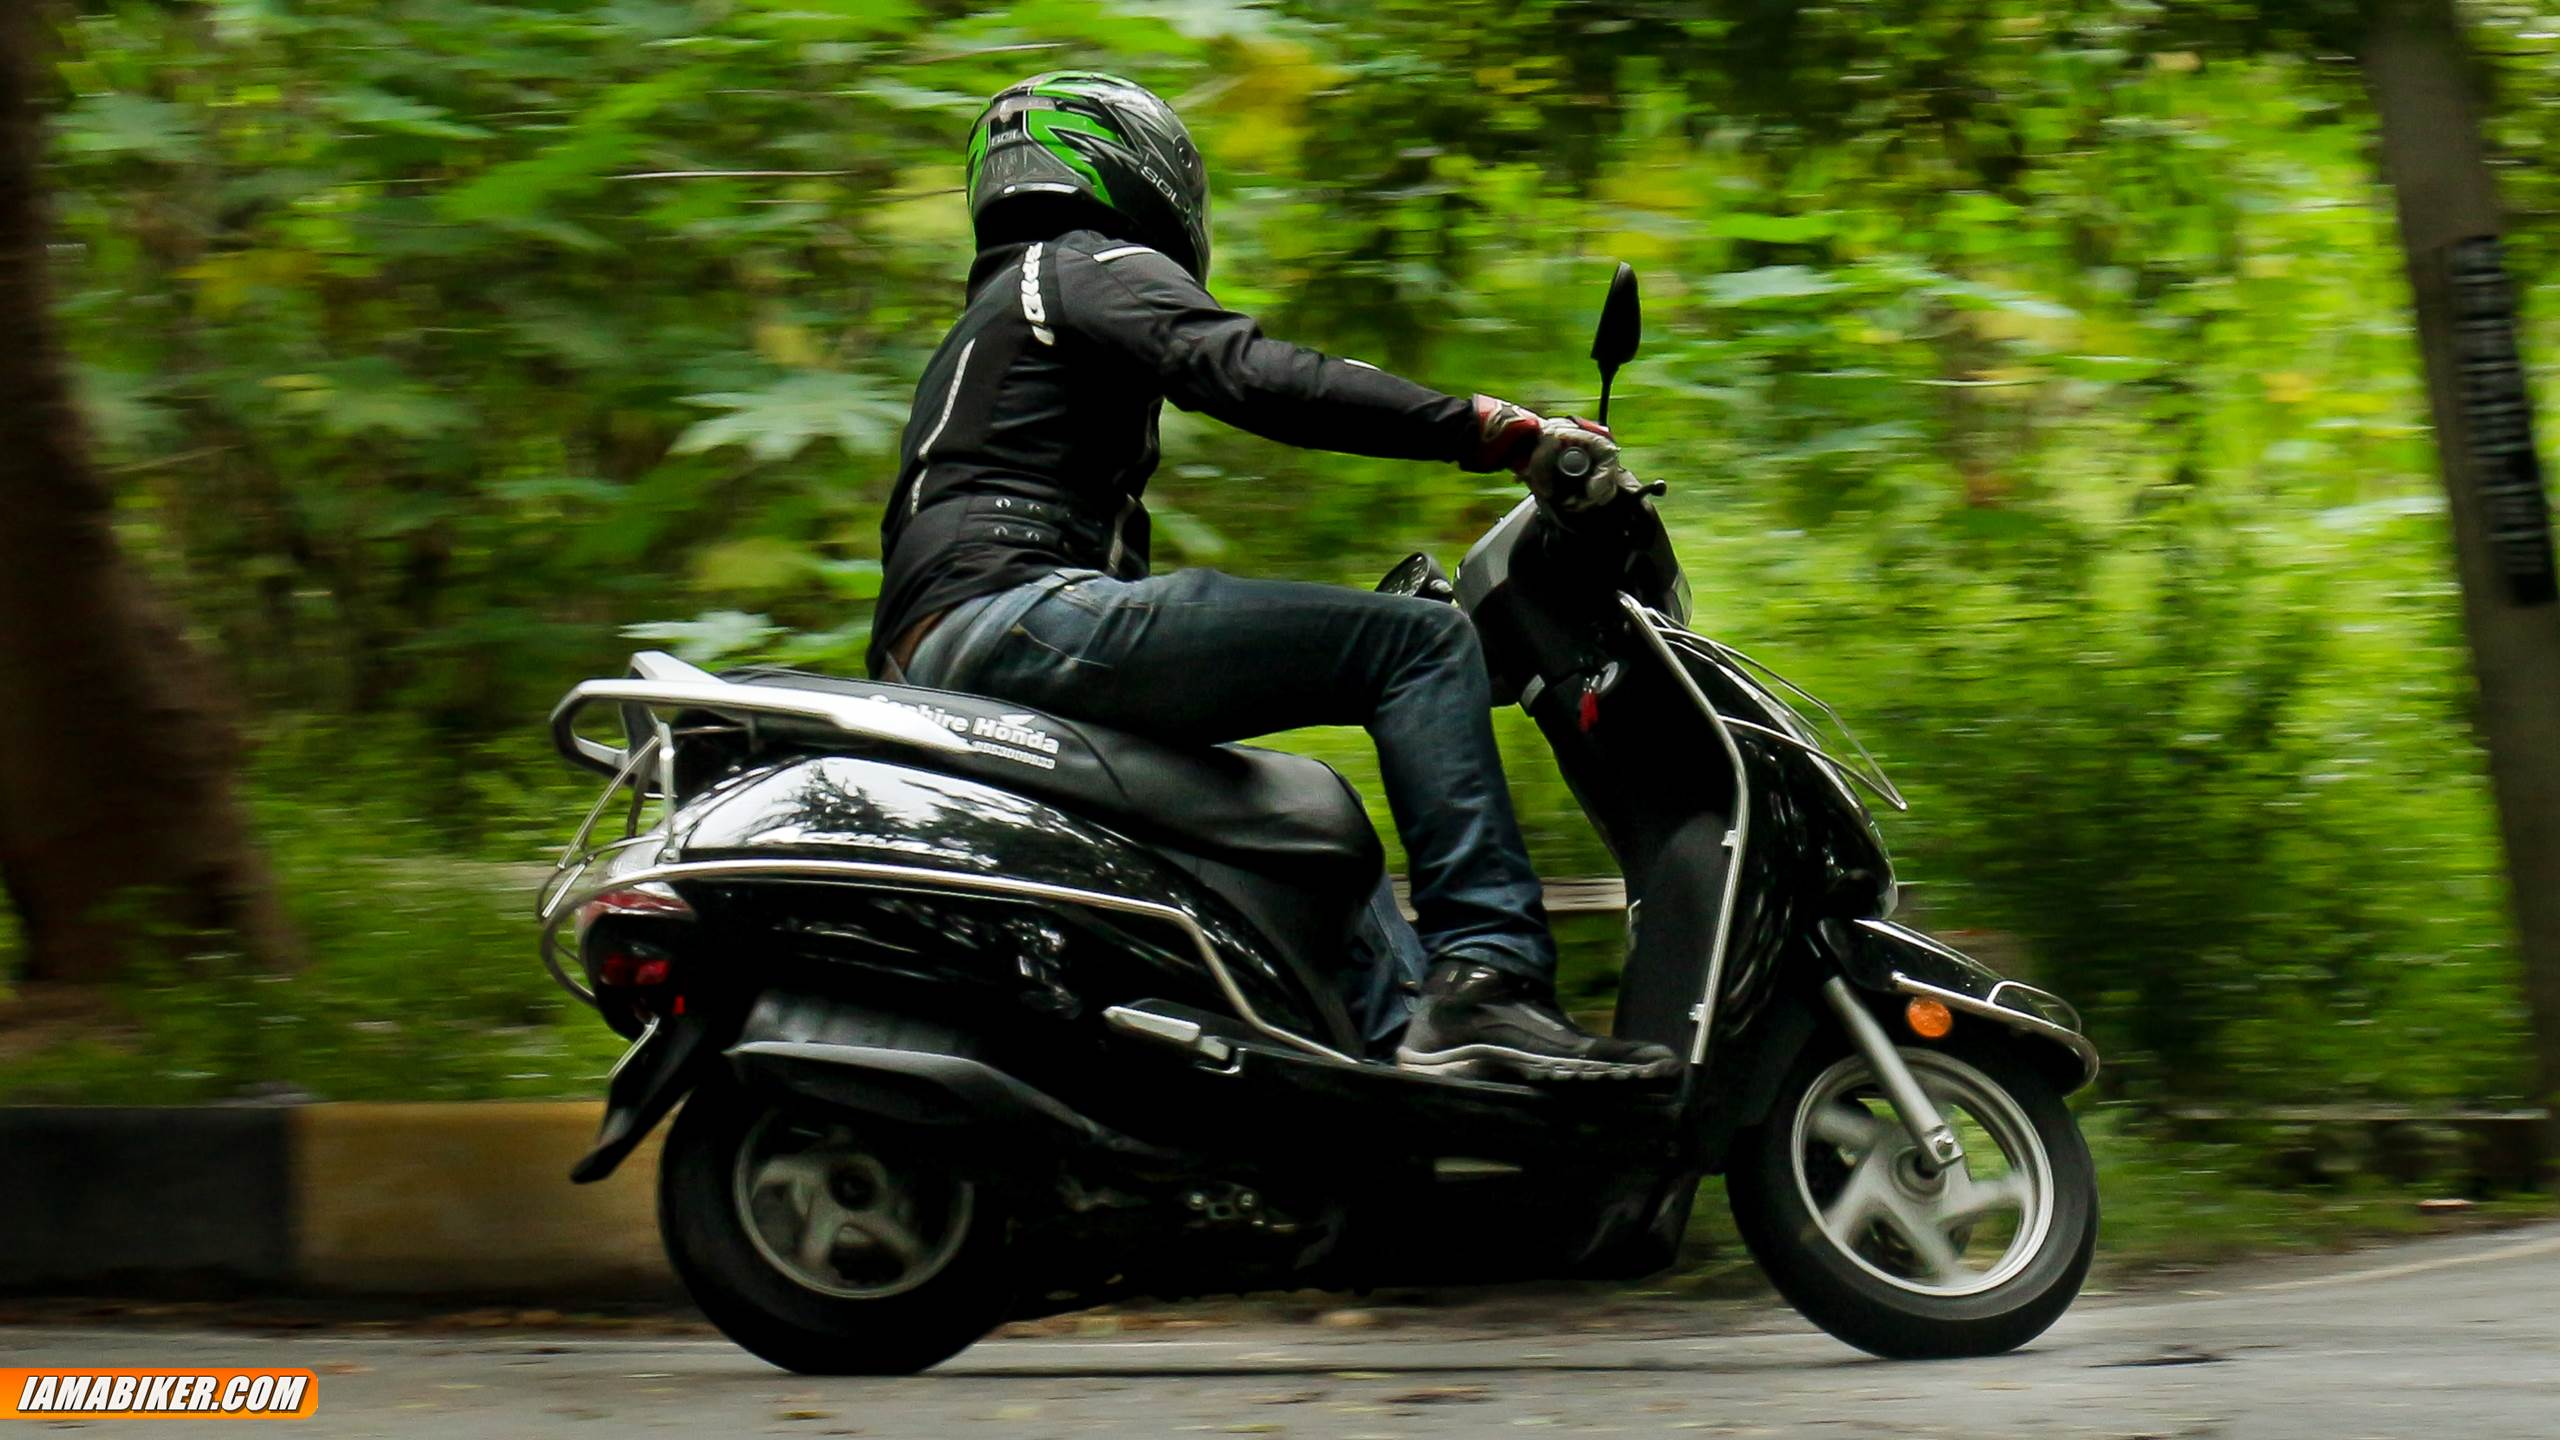 new activa 125 review - handling and braking